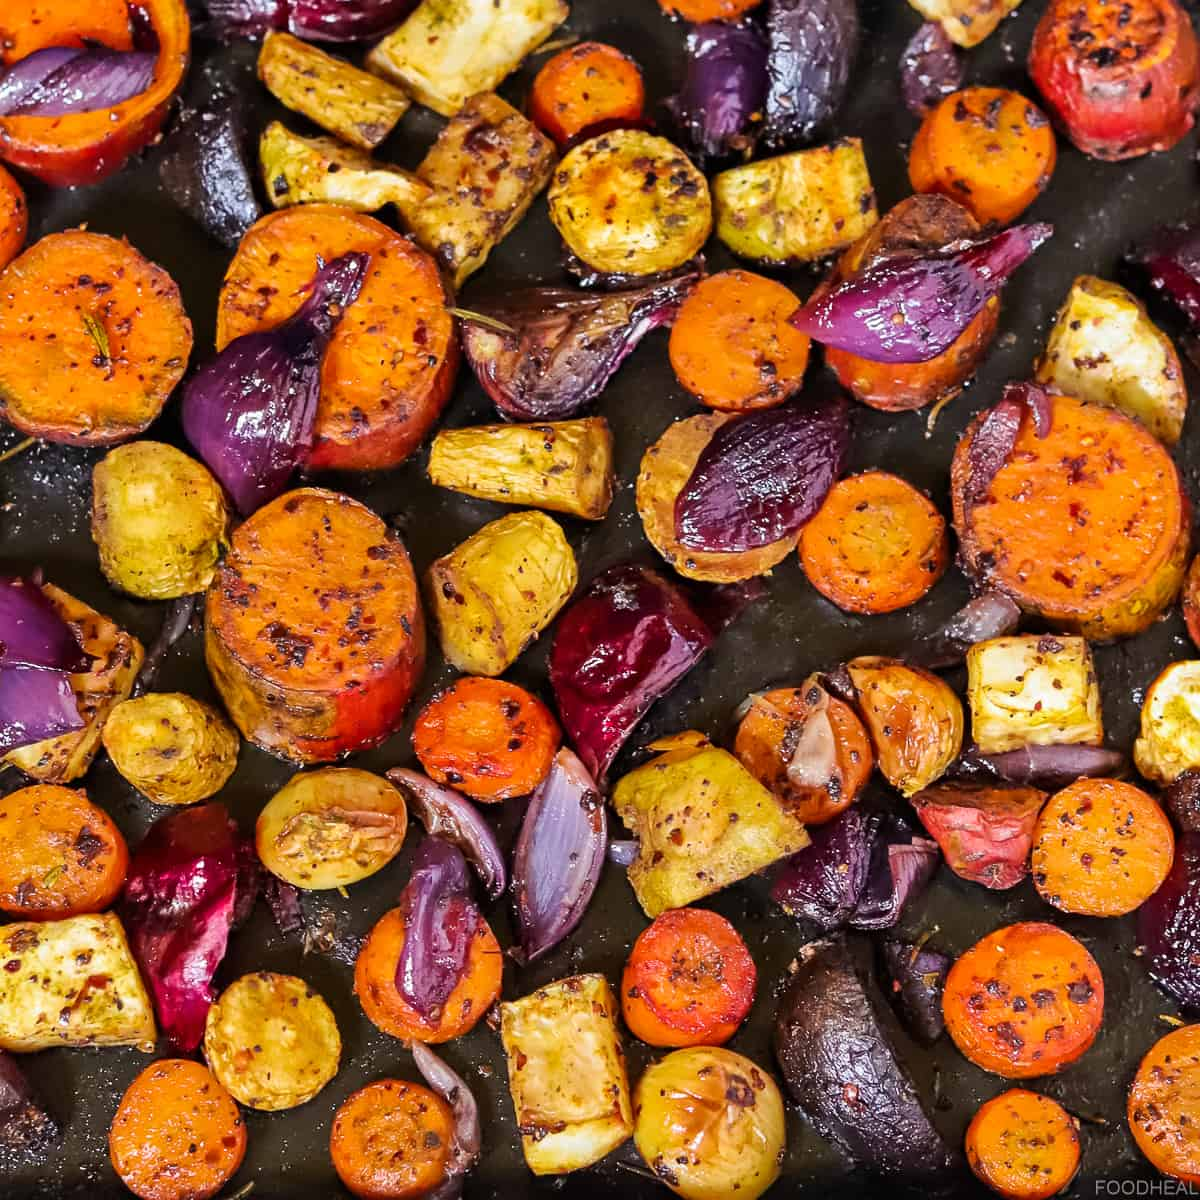 Roasted root vegetables on a sheet pan